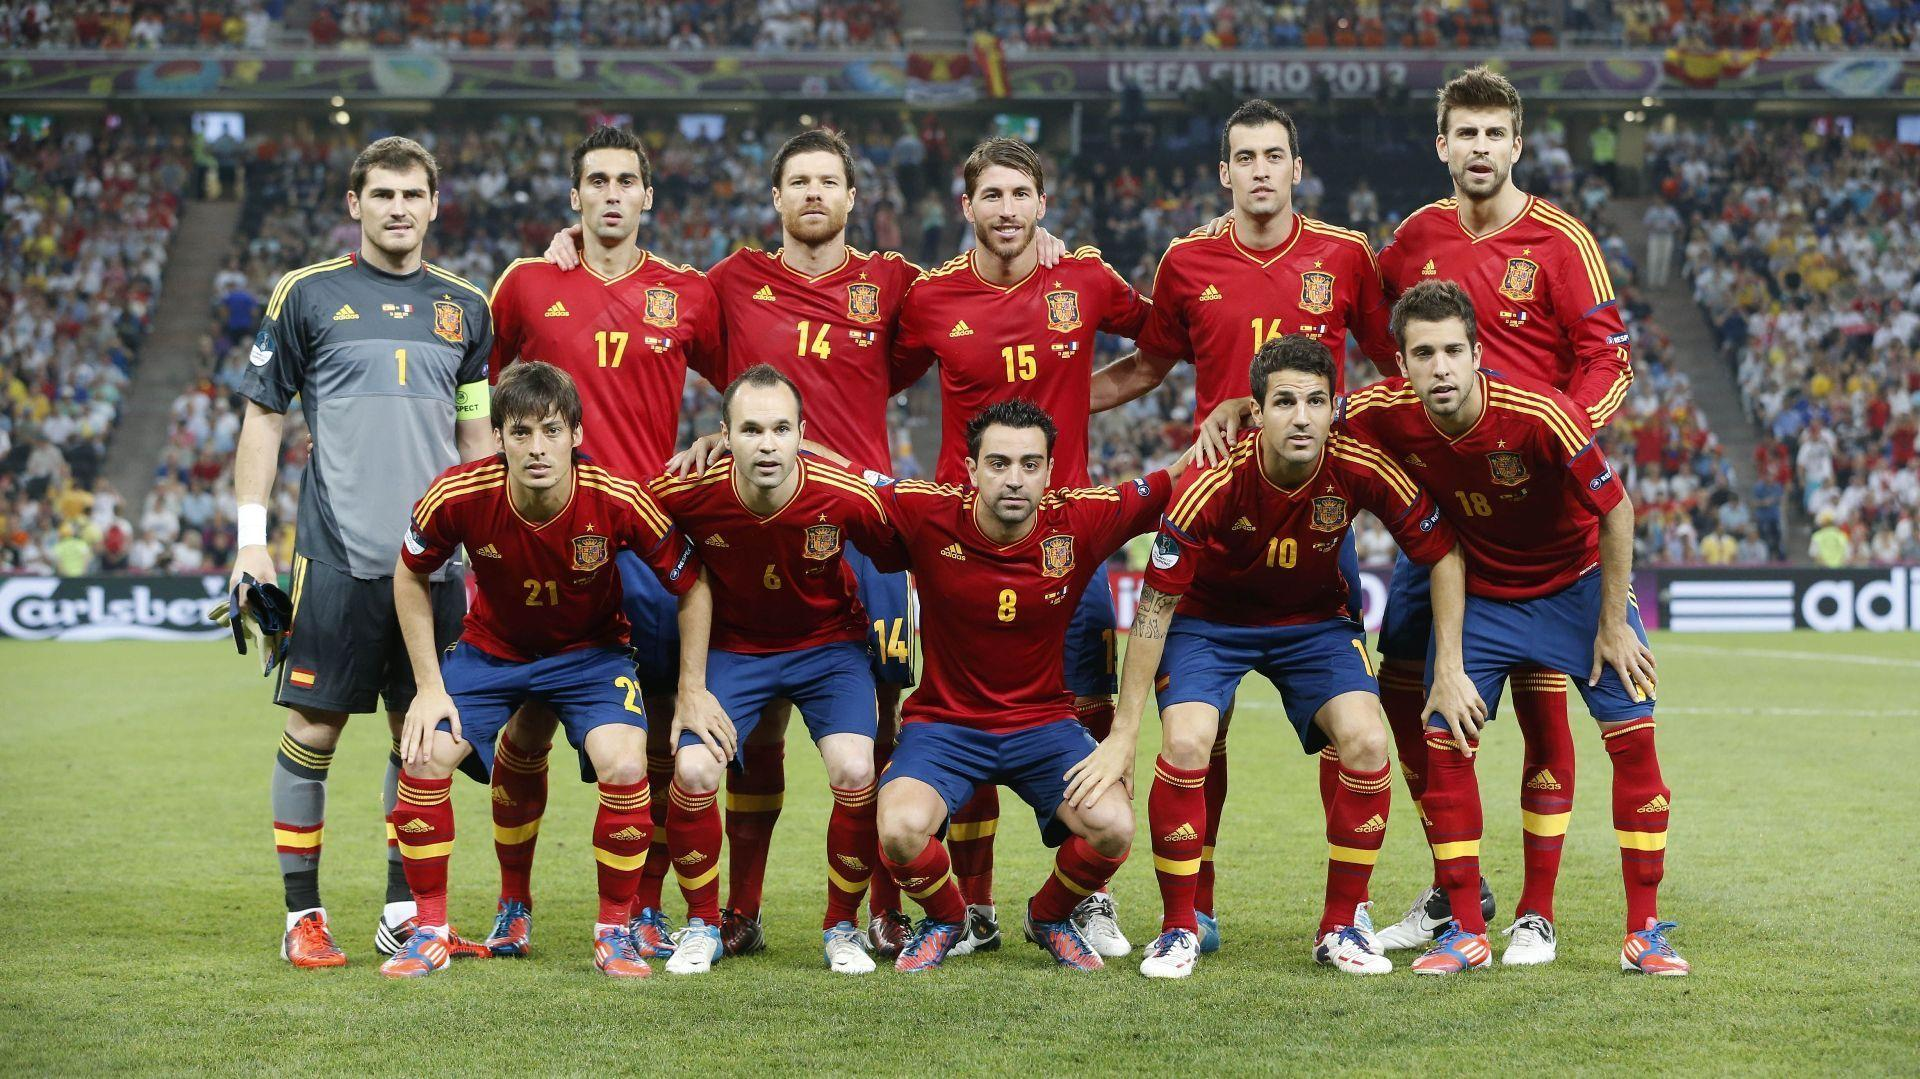 Spain National Team Wallpapers 1920x1079